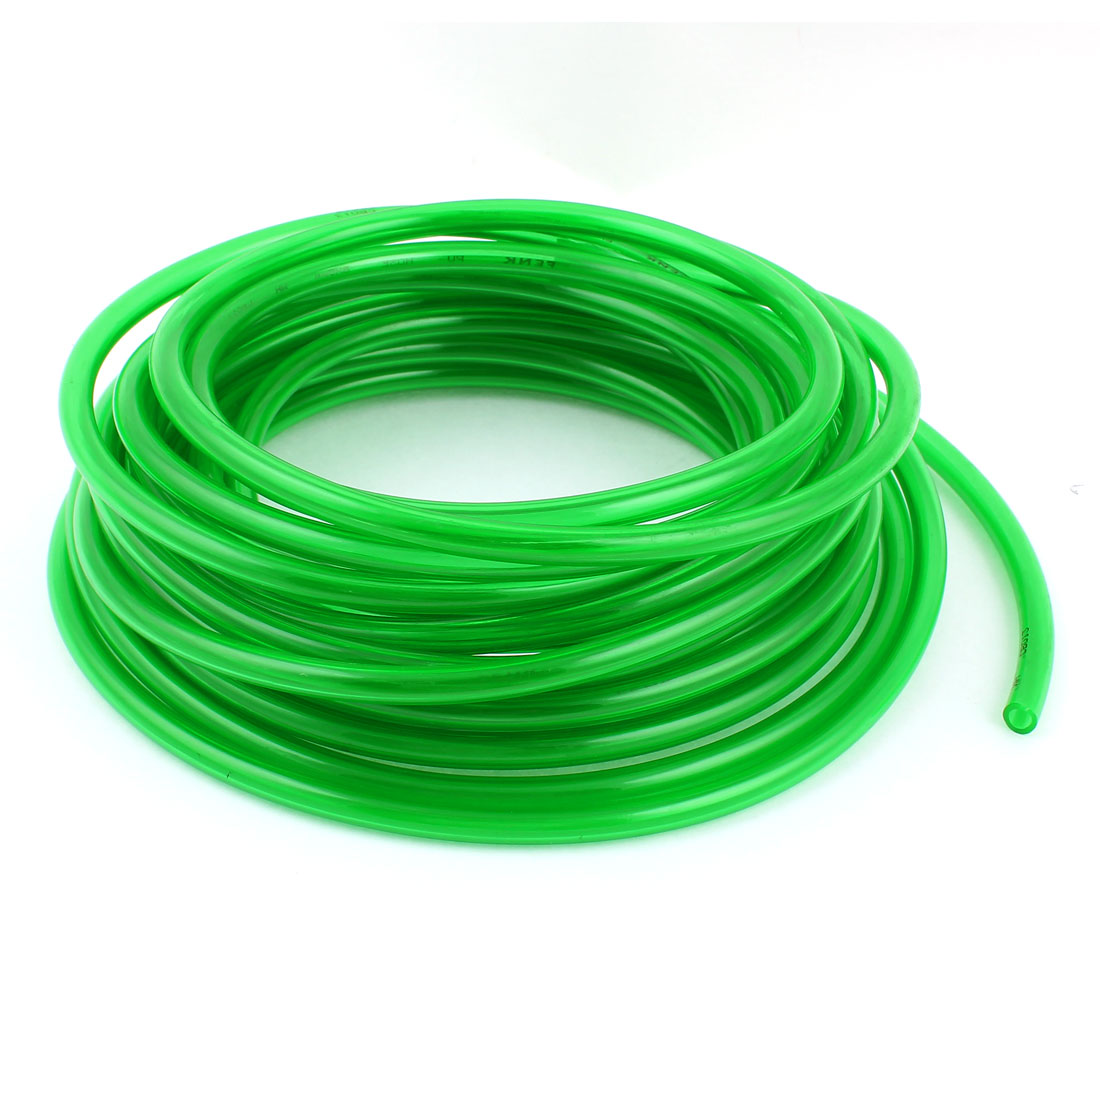 10m 33ft 8mmx5mm Pneumatic Polyurethane PU Hose Tube Pipe Clear Green